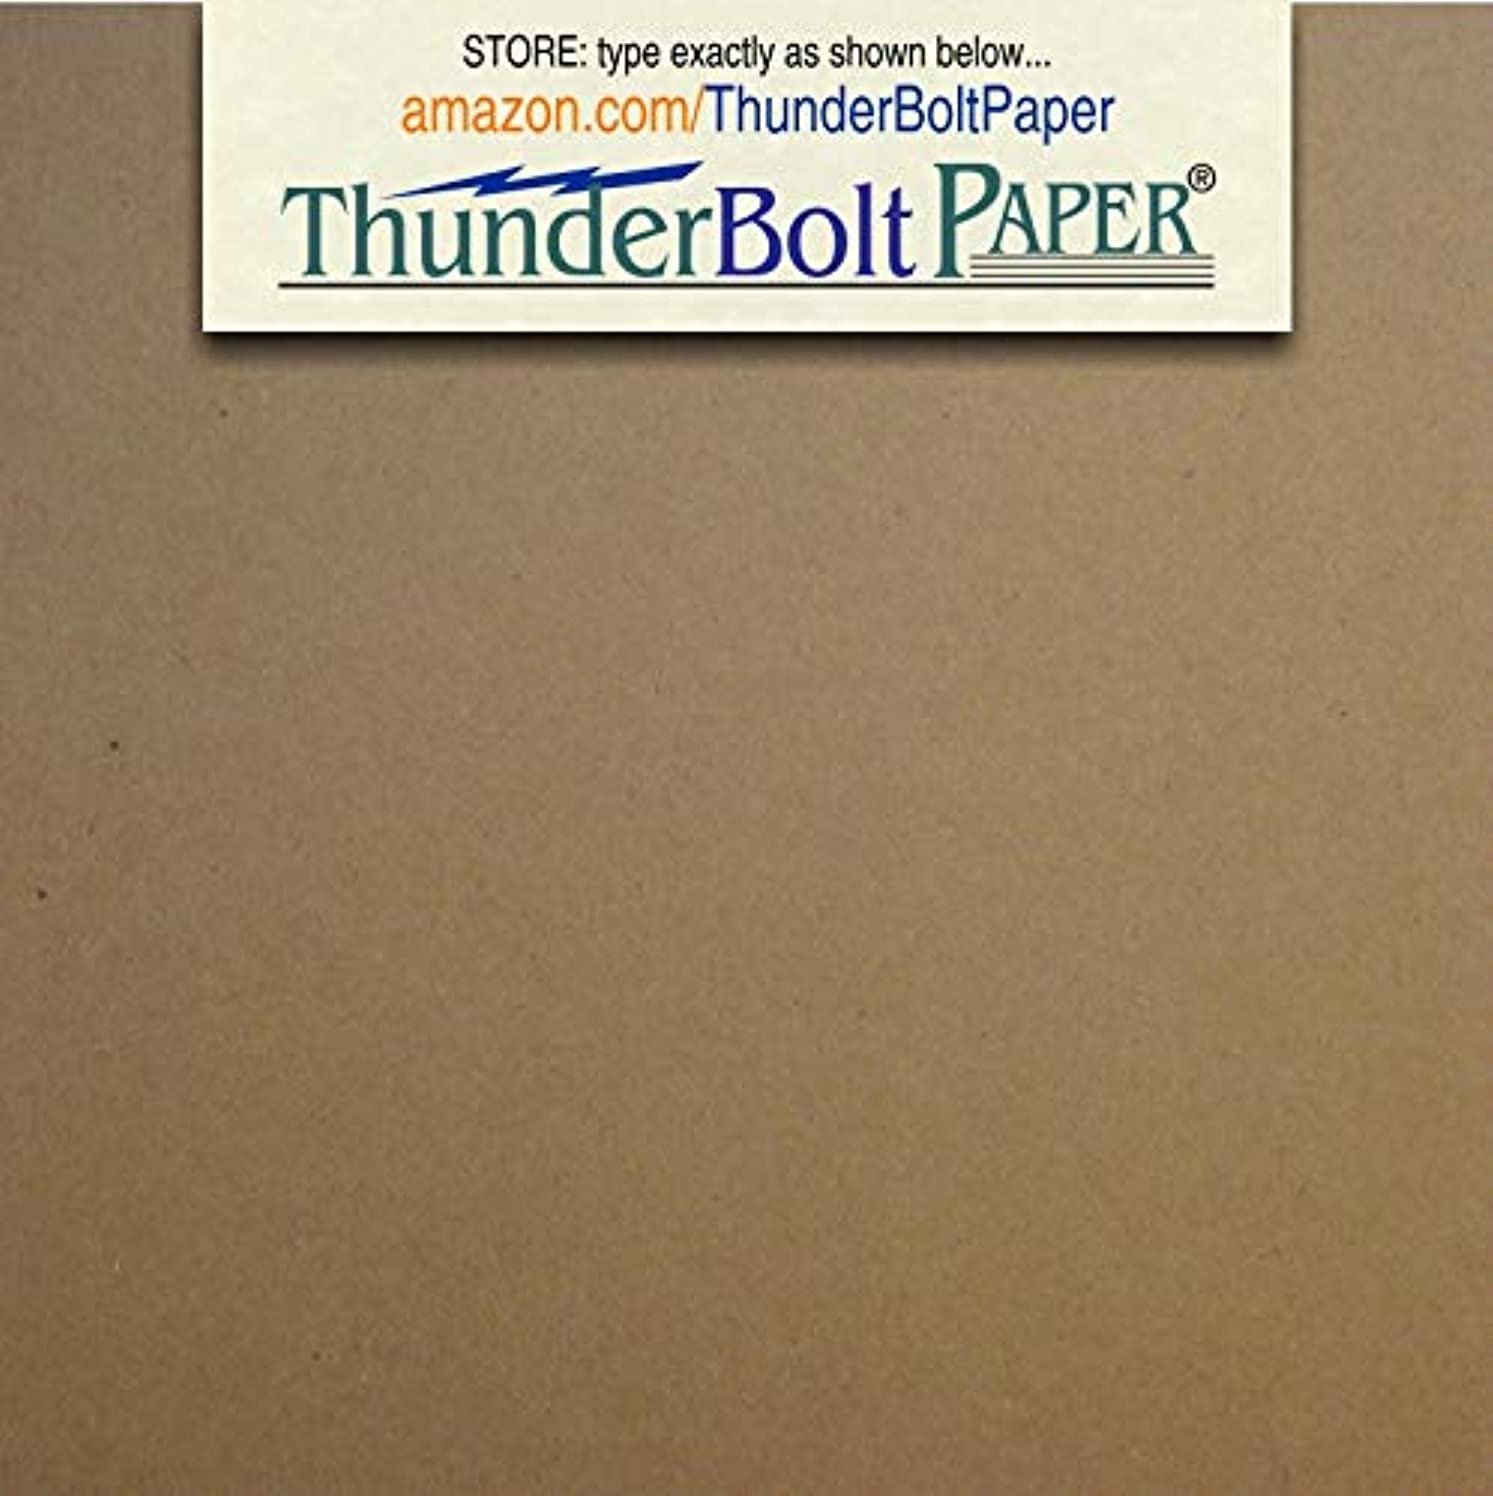 100 Sheets Chipboard 46pt (point) 4 X 4 Inches Heavy Weight Scrapbook Square Size .046 Caliper Thick Cardboard Craft|Packing Brown Kraft Paper Board